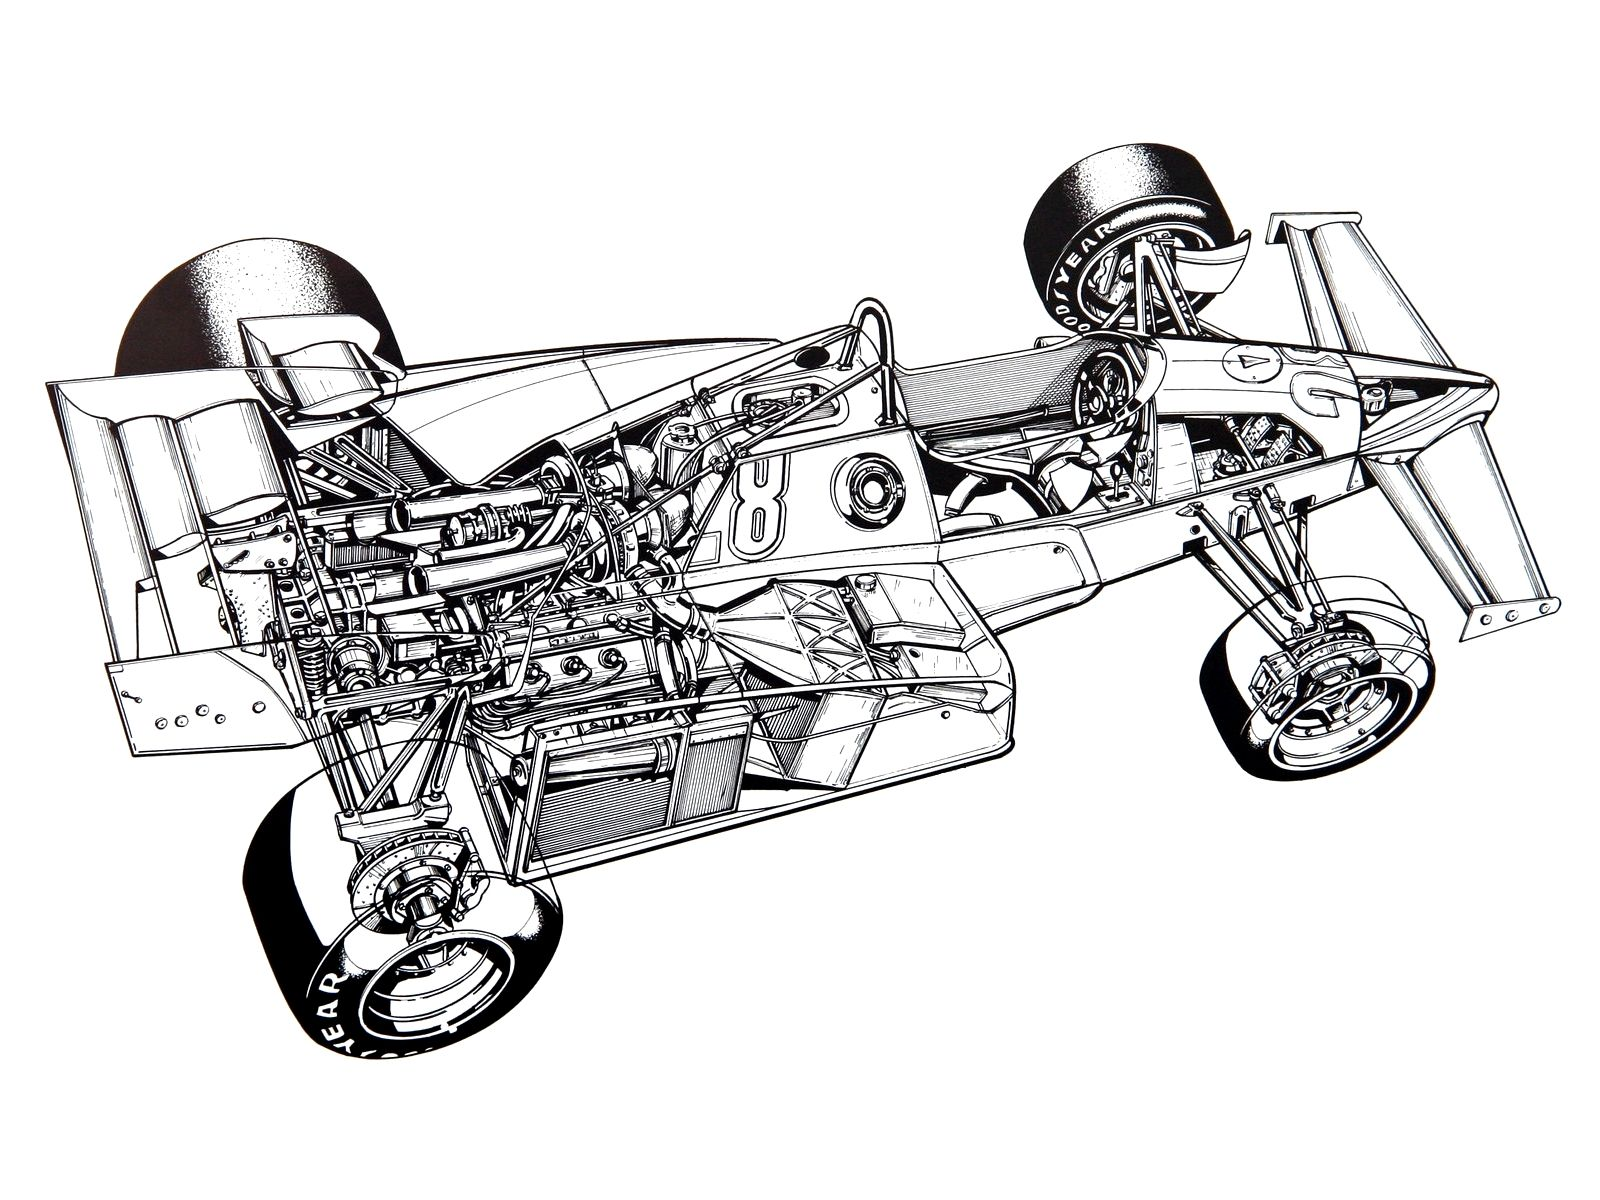 1600x1200 Ferrari Formula Cutaway Drawings The Car Build Index